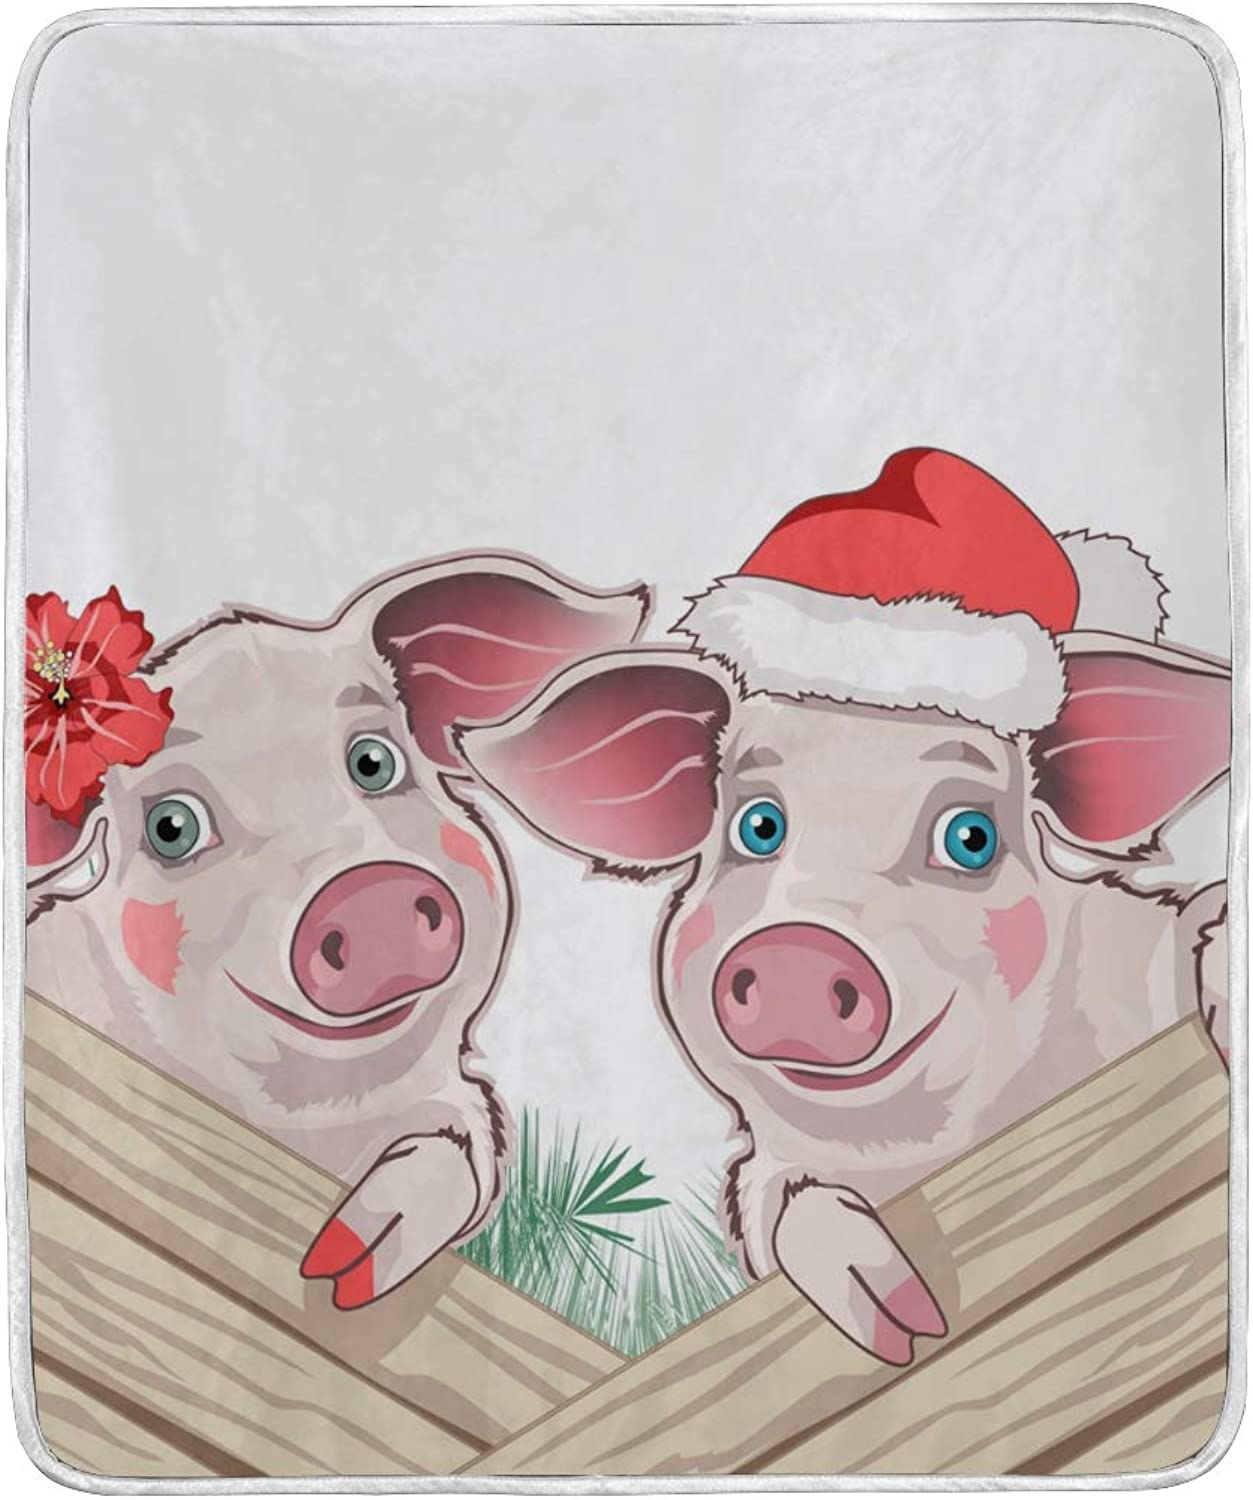 Vantaso Blankets Cute Christmas Pig Couple Throws Soft for Kids Girls Boys 50x60 inch